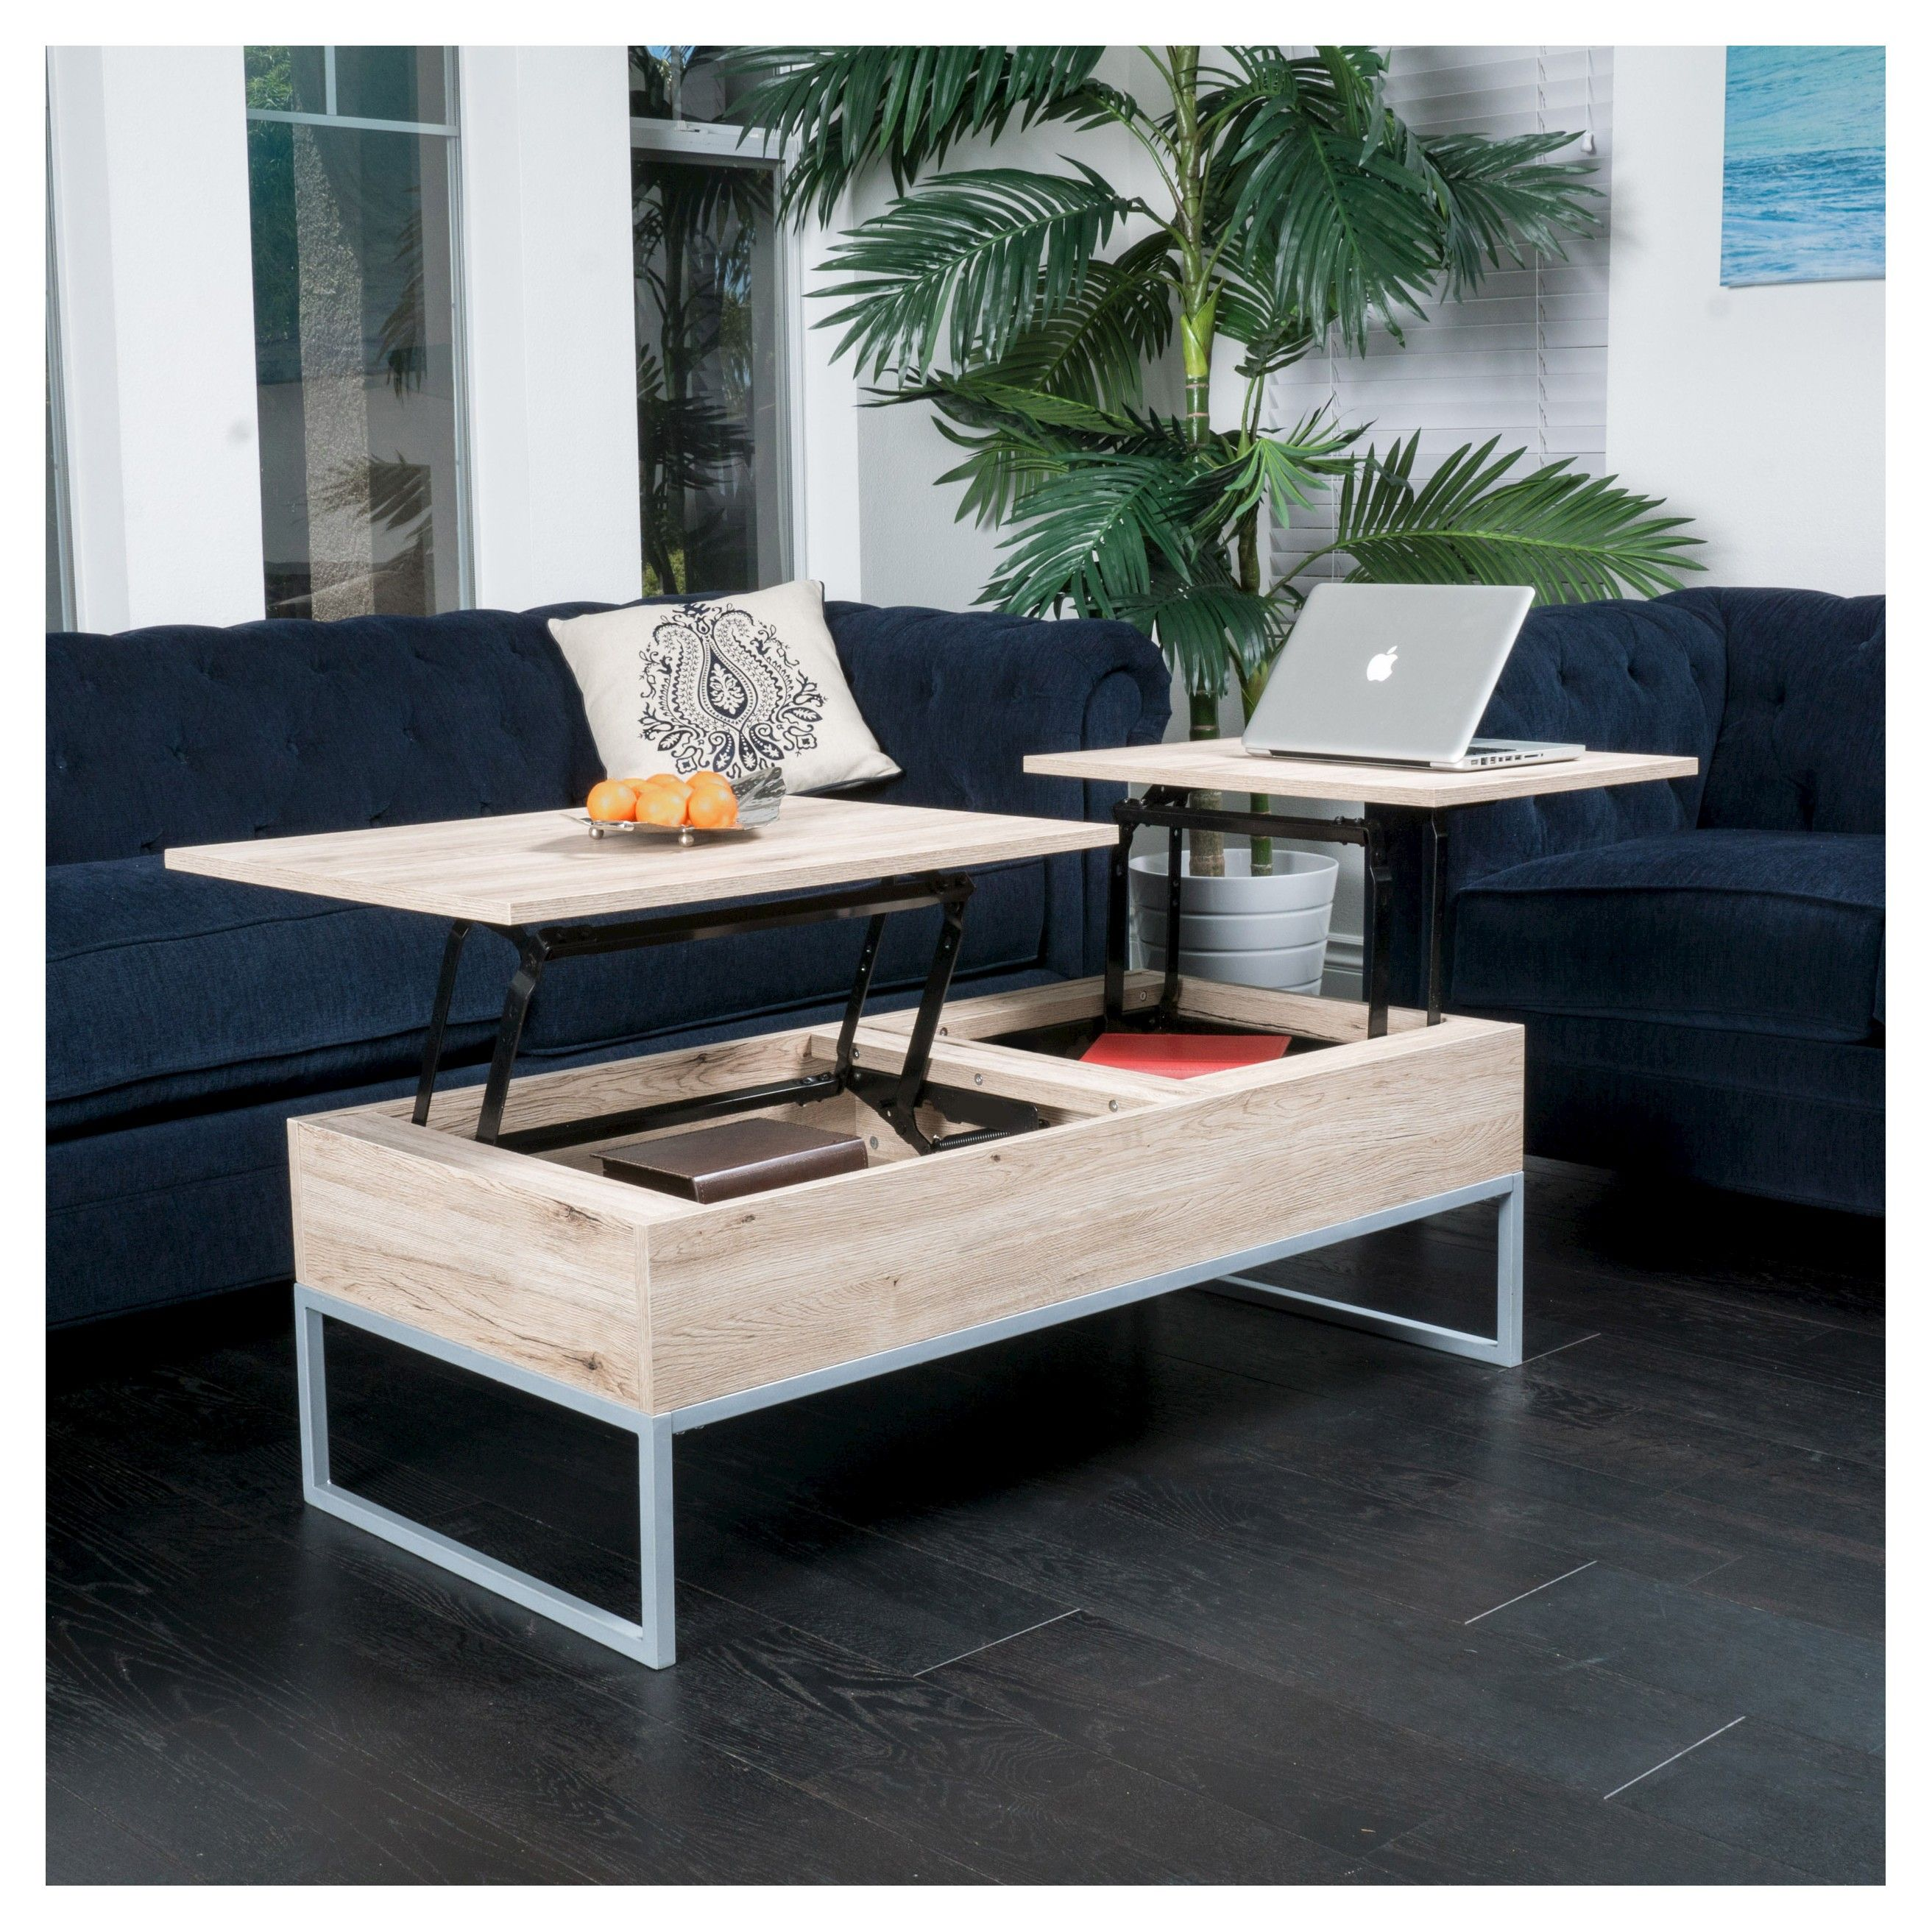 Lift Functional Coffee Table Brown Christopher Knight Home Coffee Table Lift Up Coffee Table Coffee Table Wood